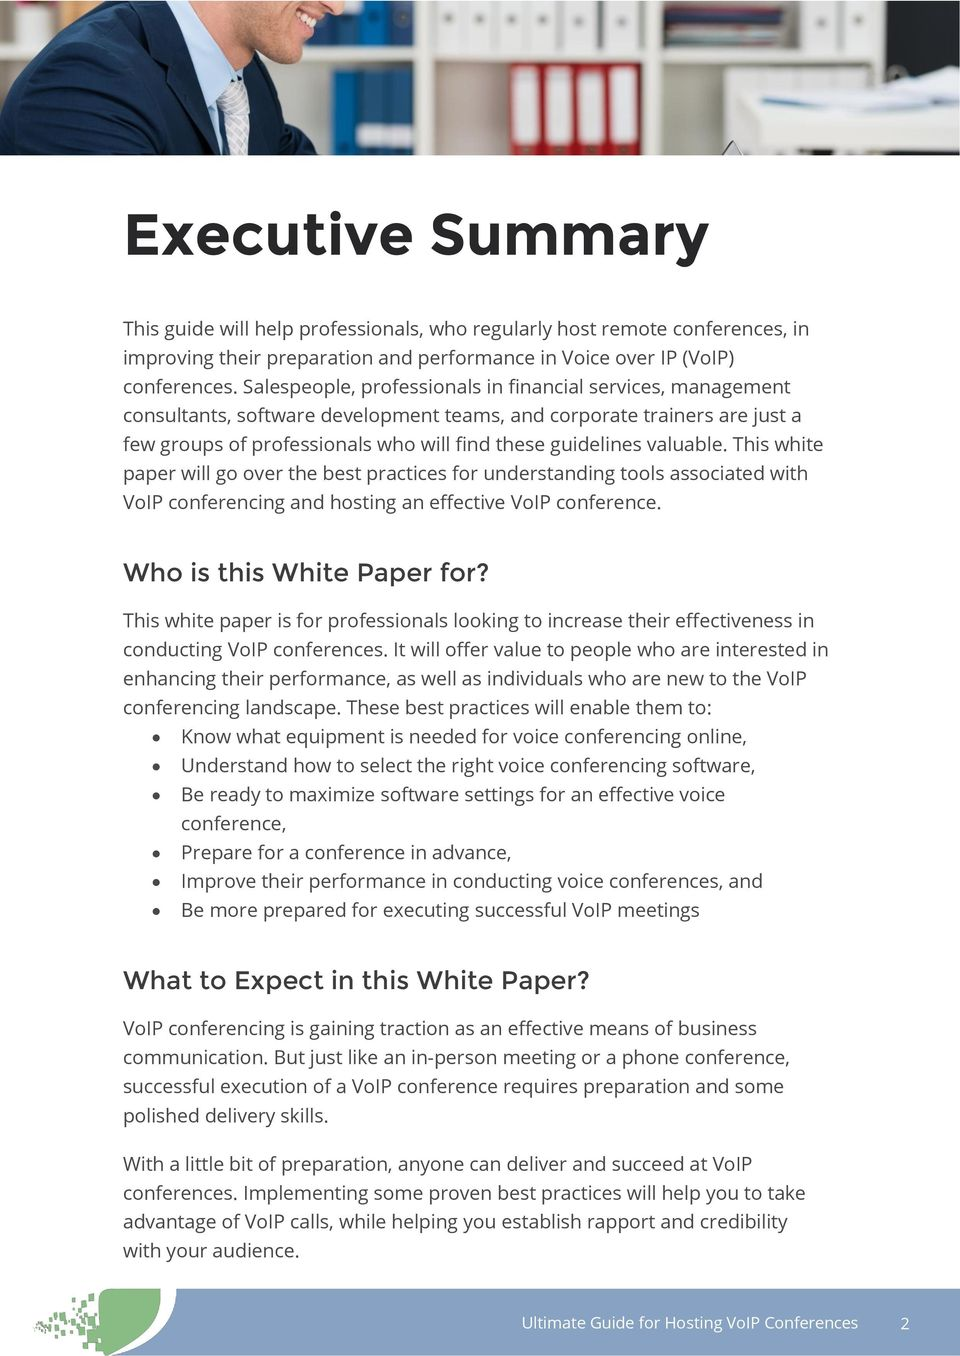 valuable. This white paper will go over the best practices for understanding tools associated with VoIP conferencing and hosting an effective VoIP conference. Who is this White Paper for?